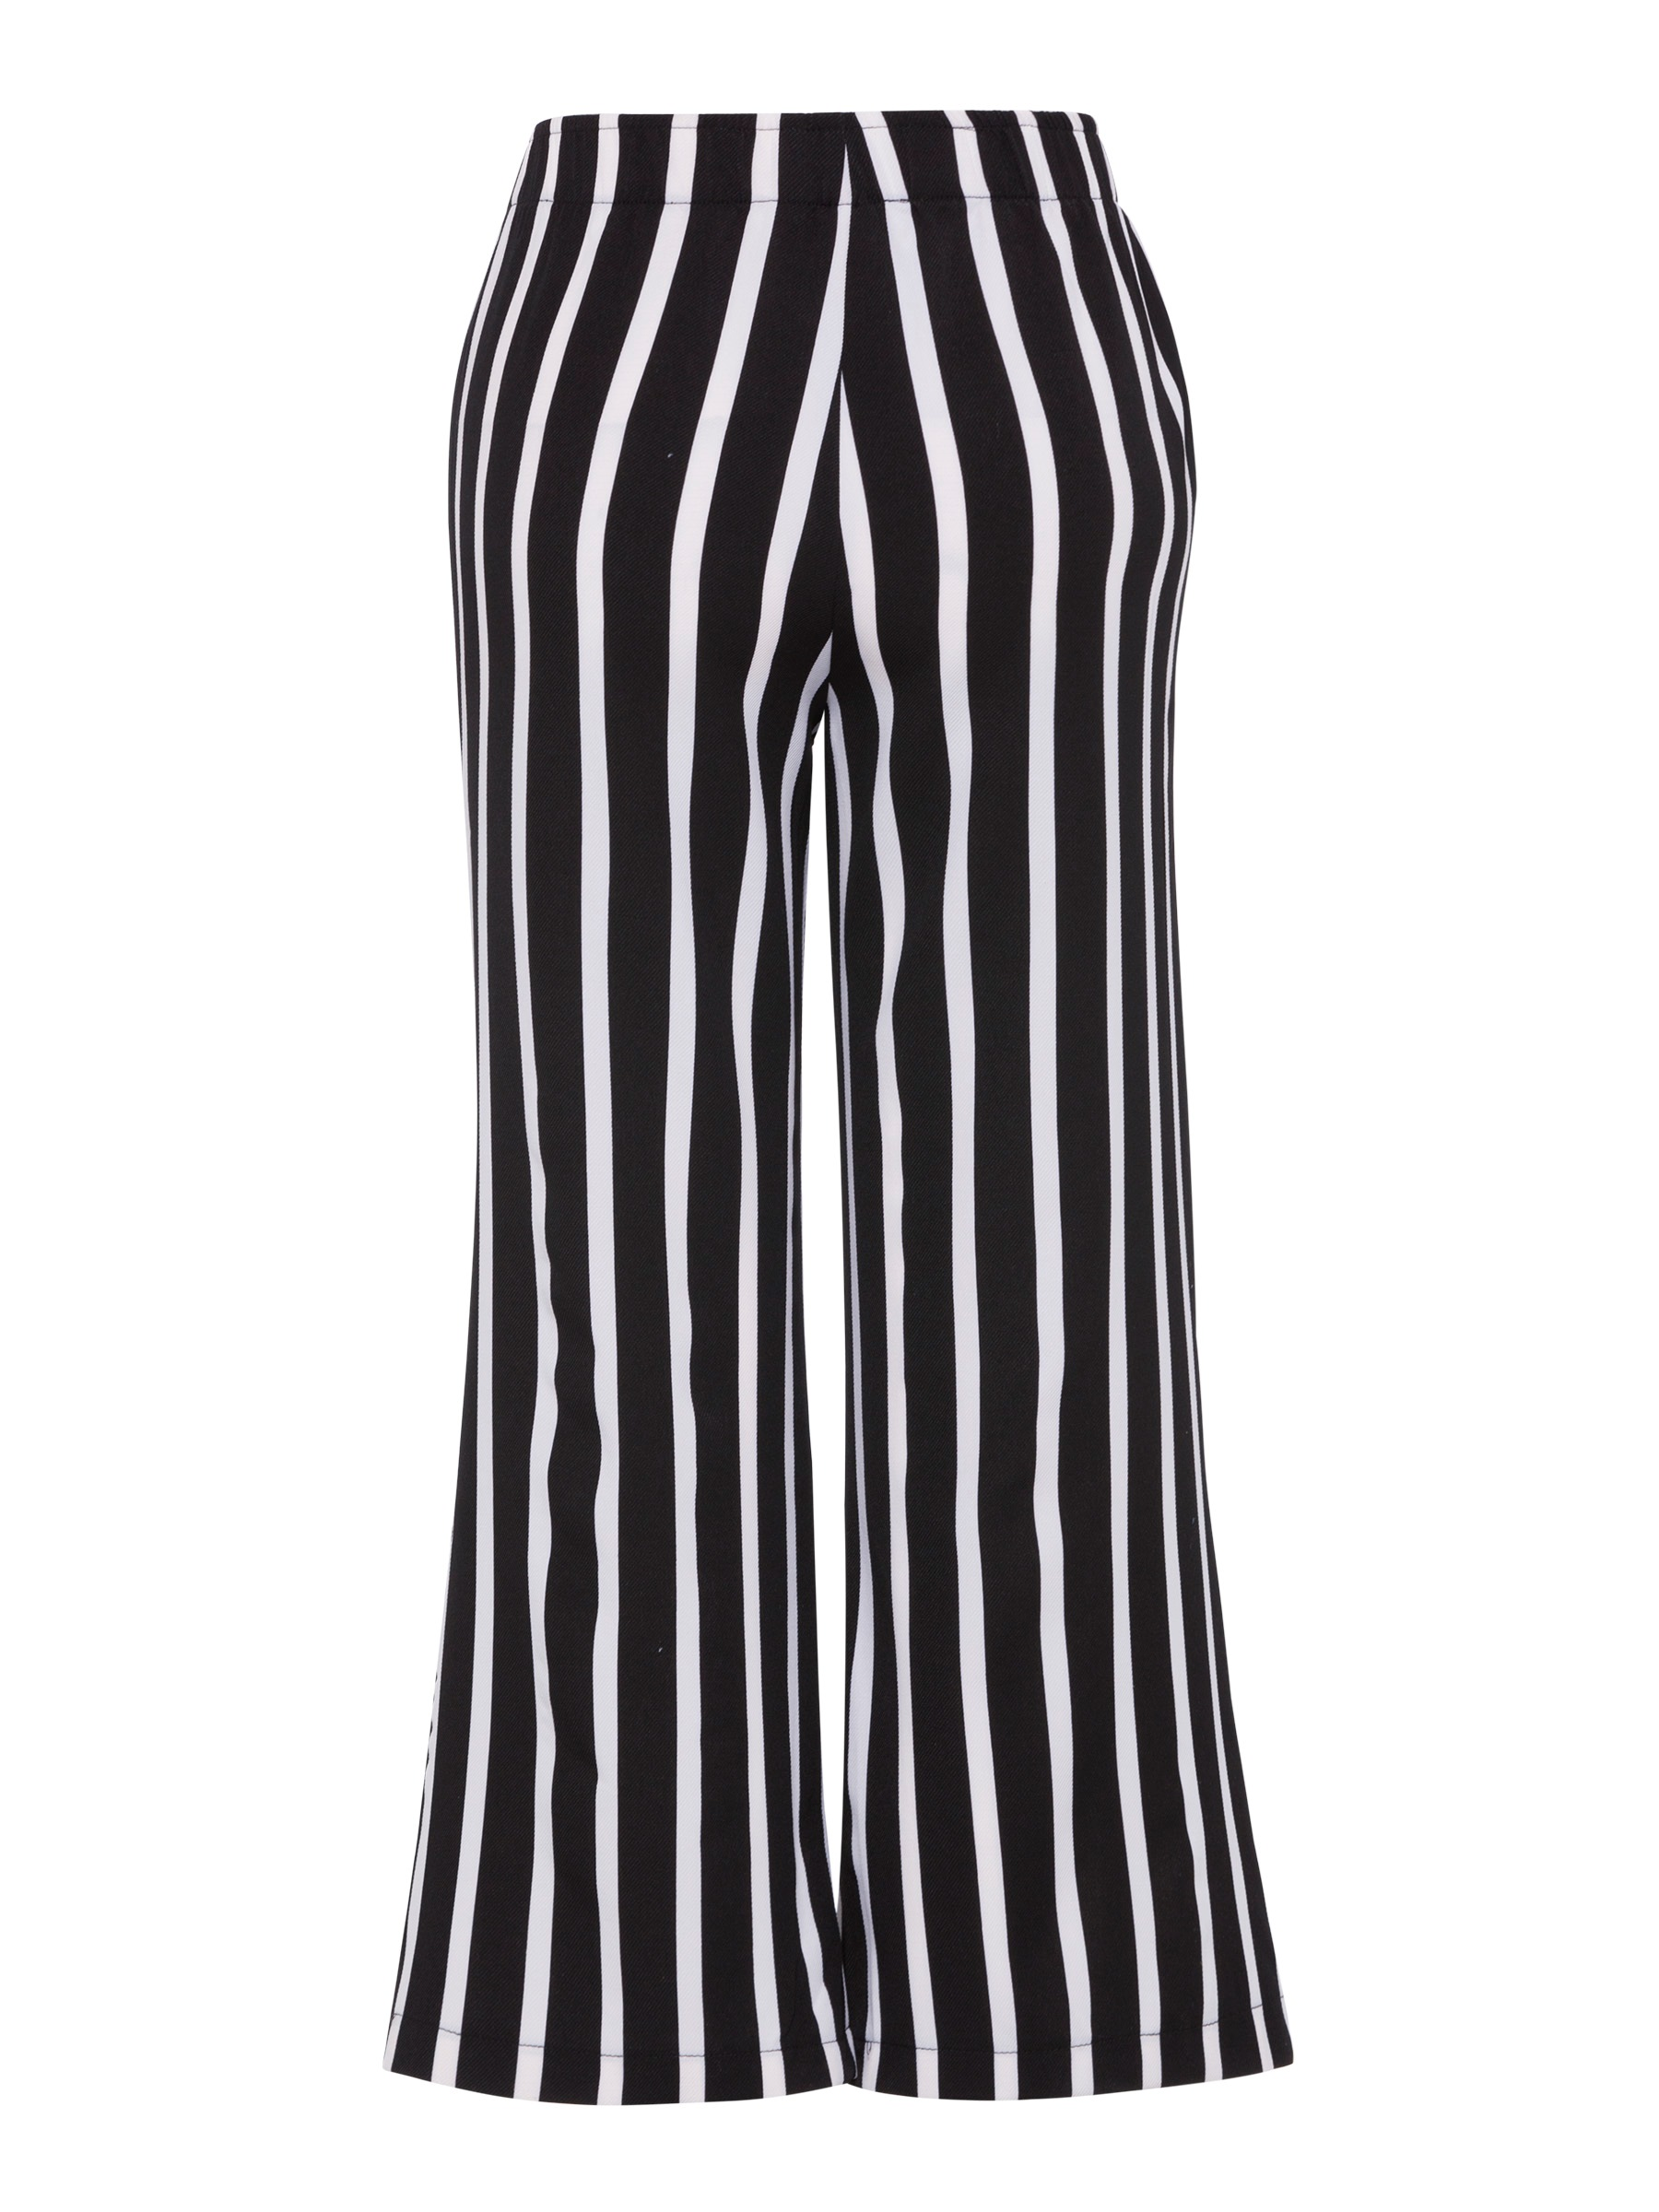 Stripe Loose Wide Legs Striped Women's Casual Pants